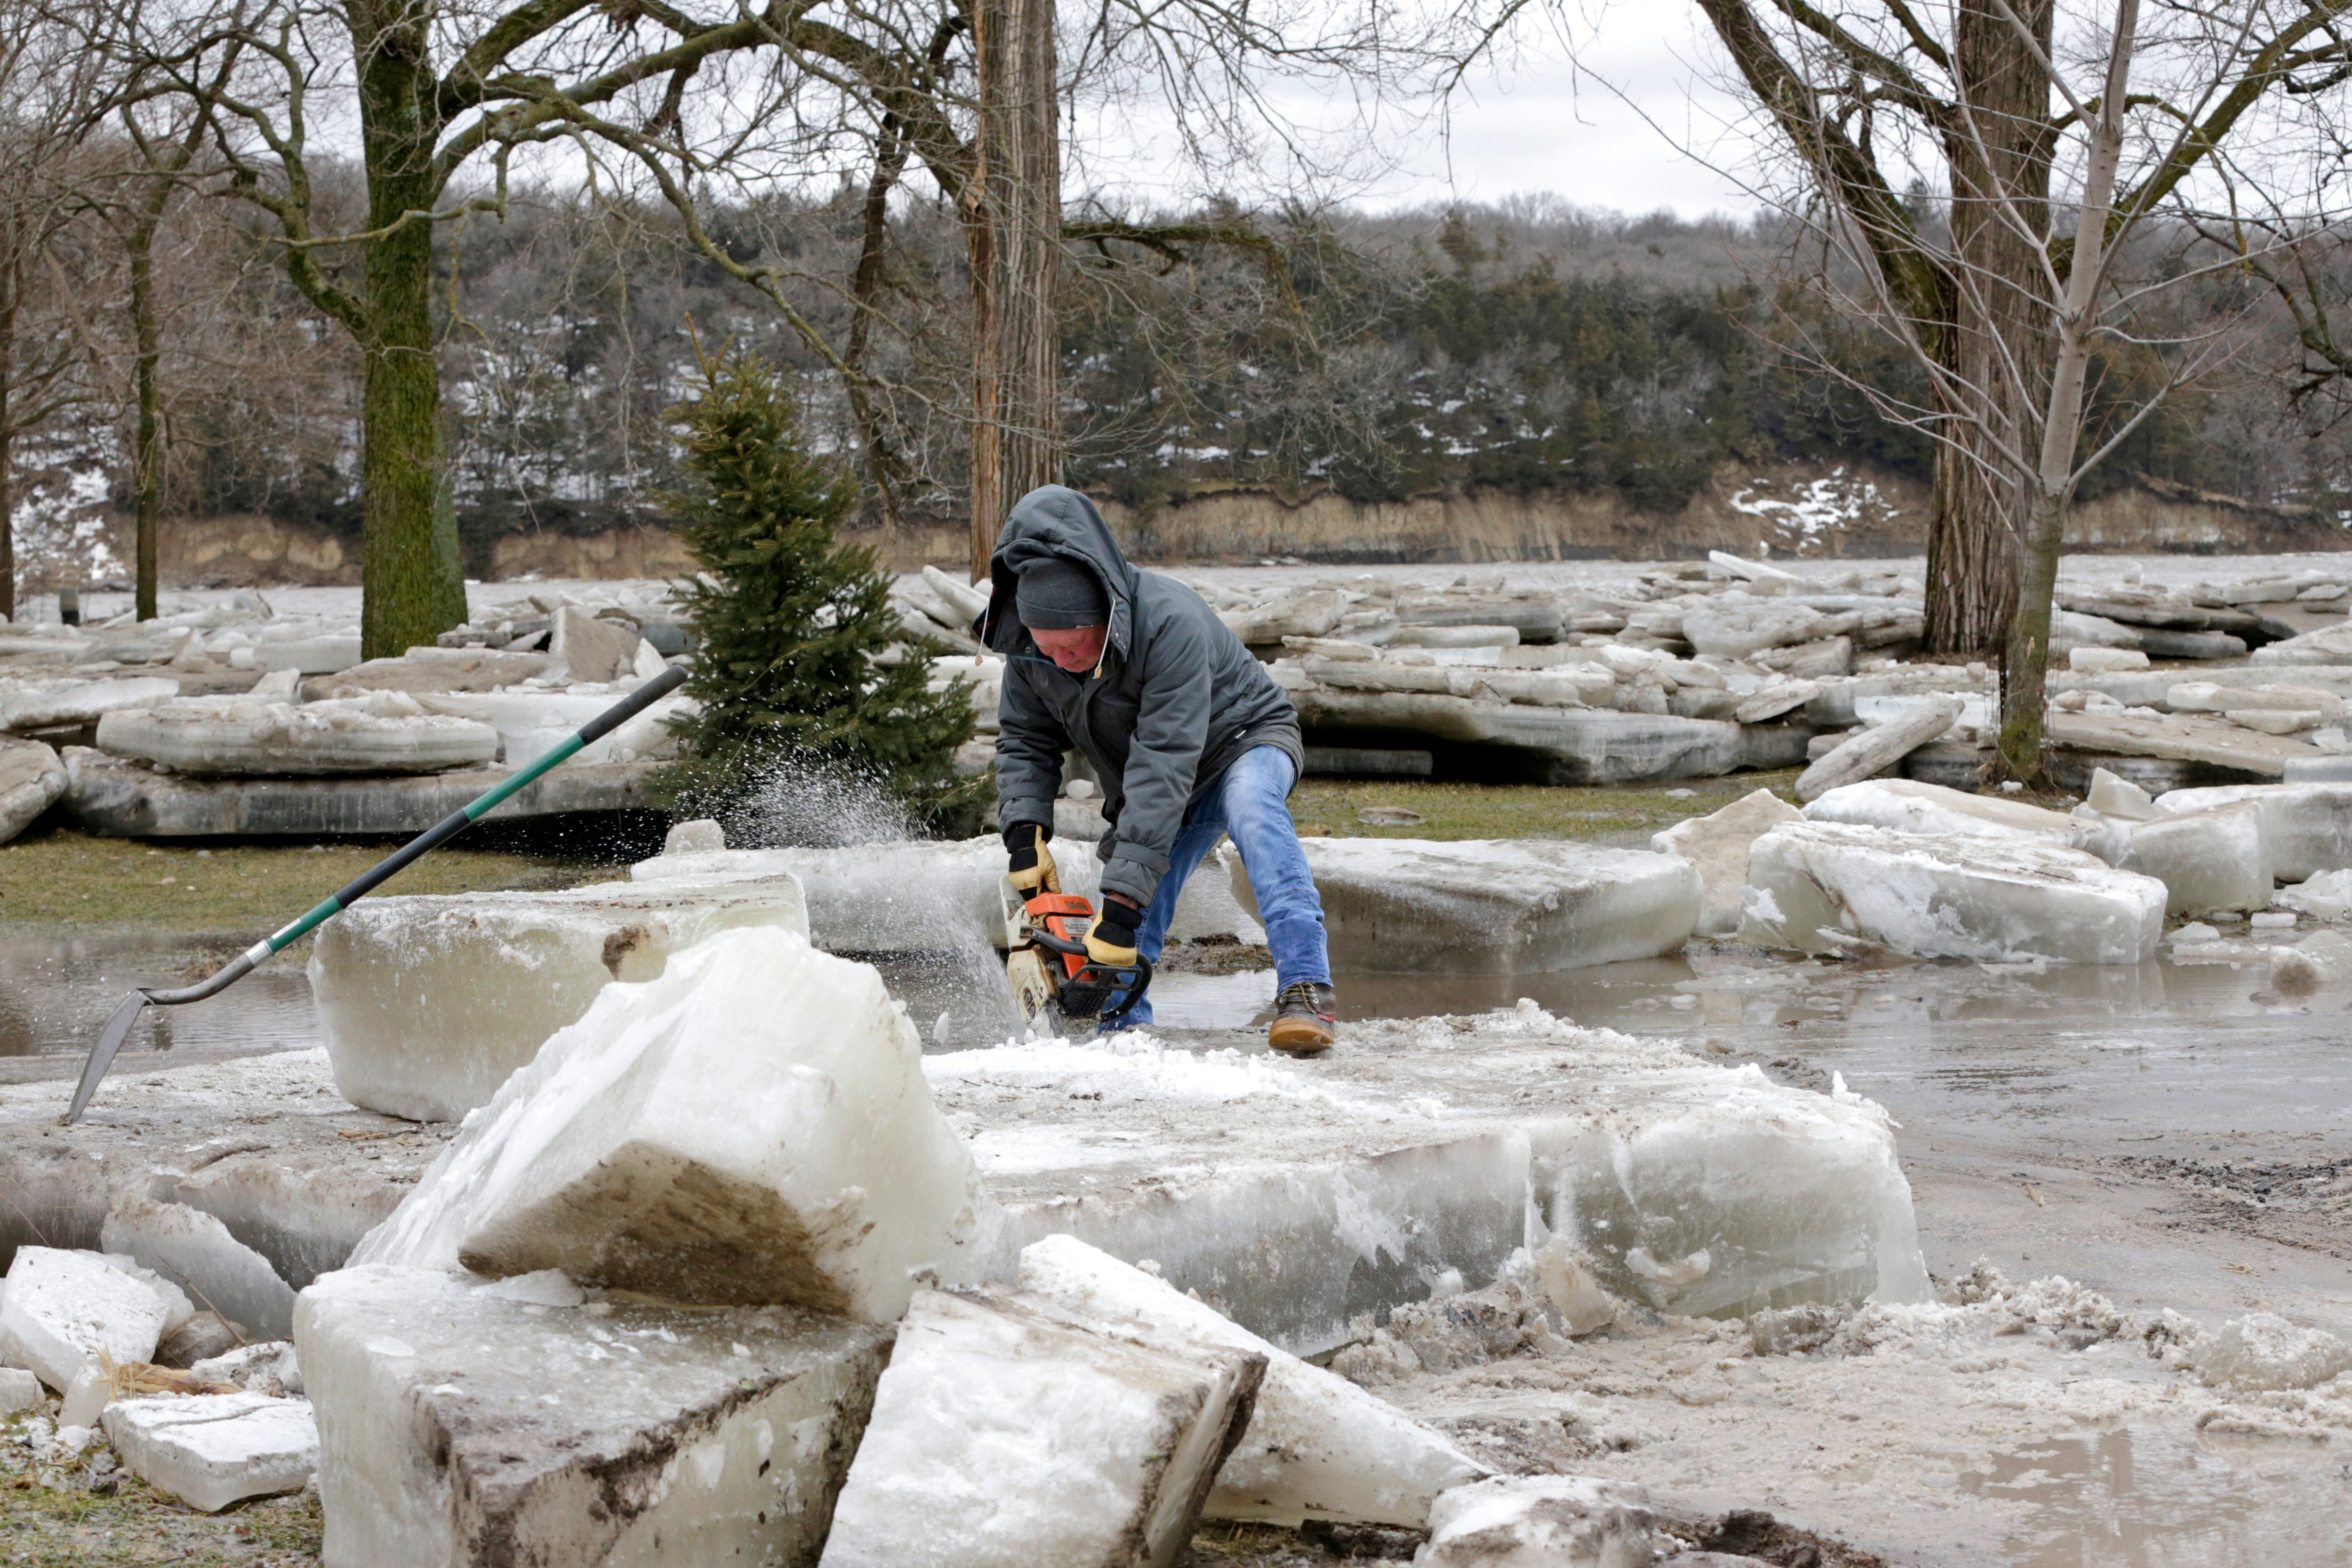 Jim Freeman tries to saw through thick ice slabs on his property in Fremont, Neb., Thursday, March 14, 2019, after the Ice-covered Platte River flooded it's banks. Evacuations forced by flooding have occurred in several eastern Nebraska communities.